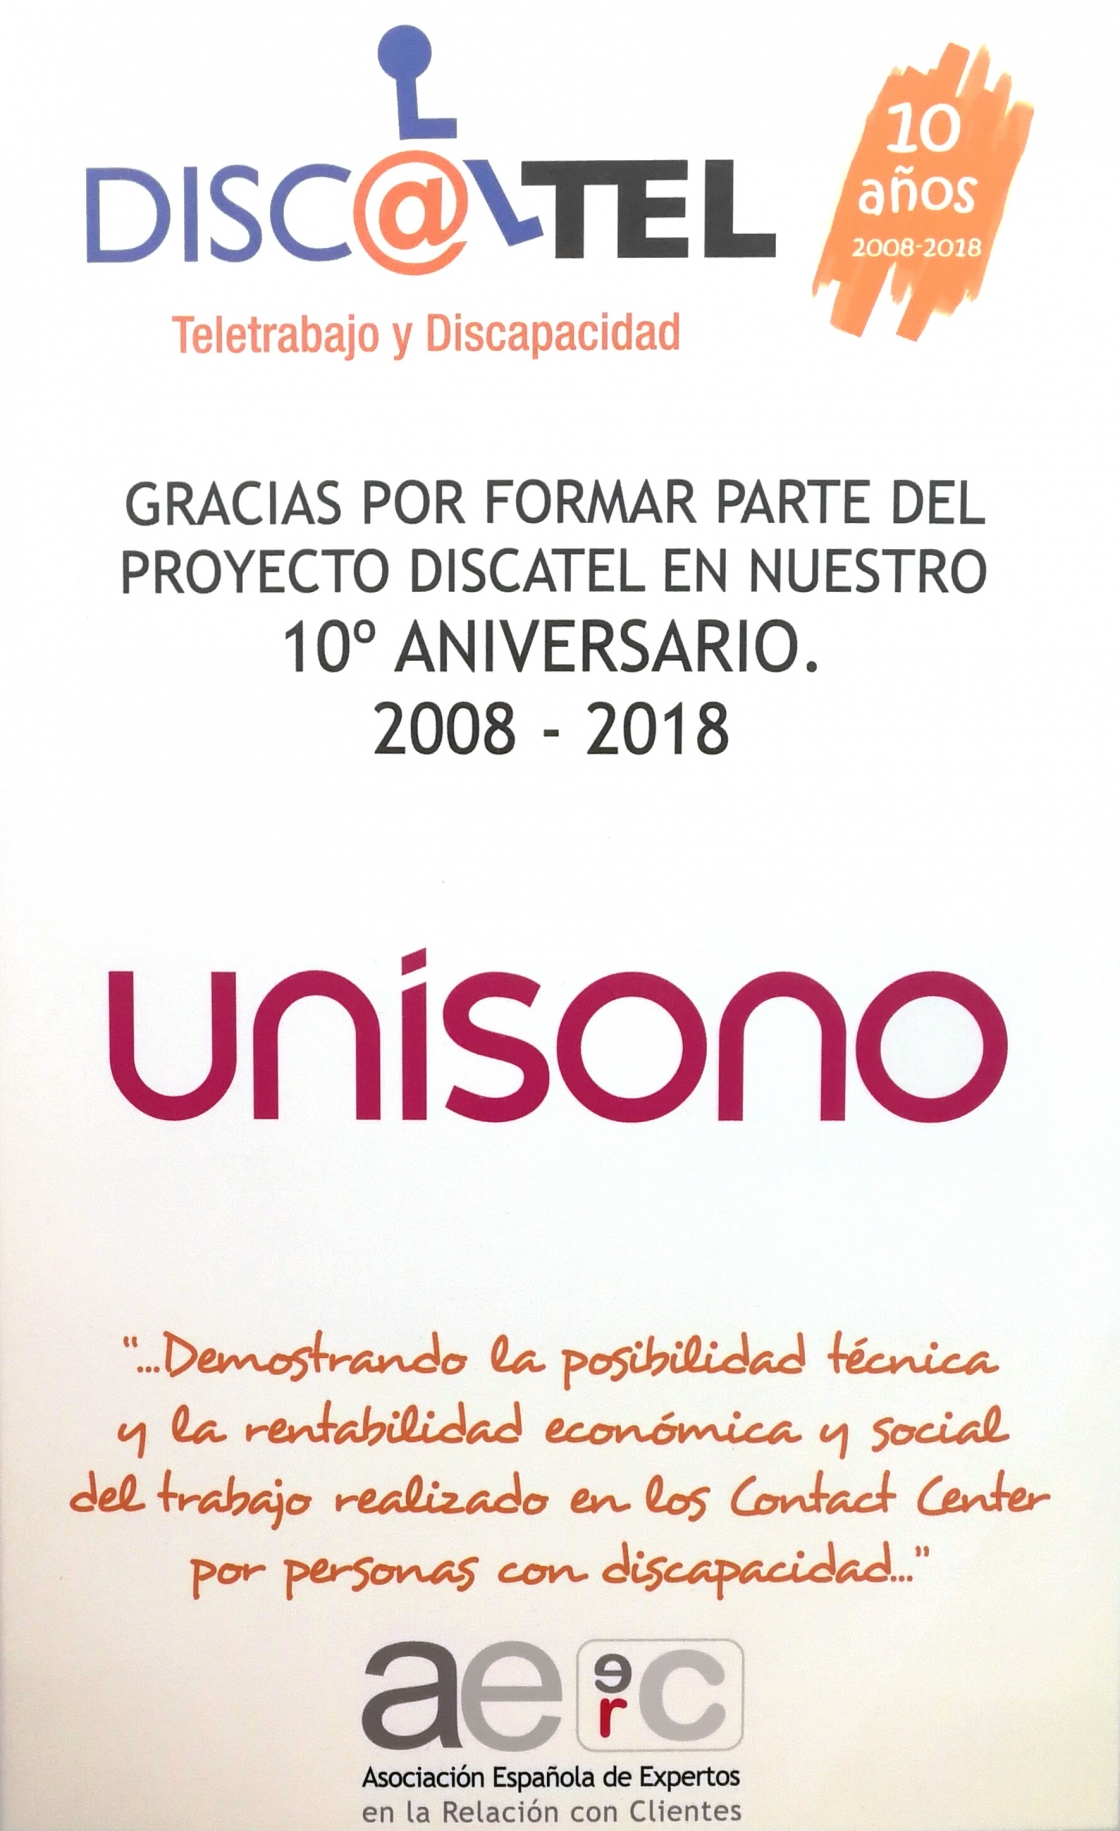 Unisono committed for a decade with project